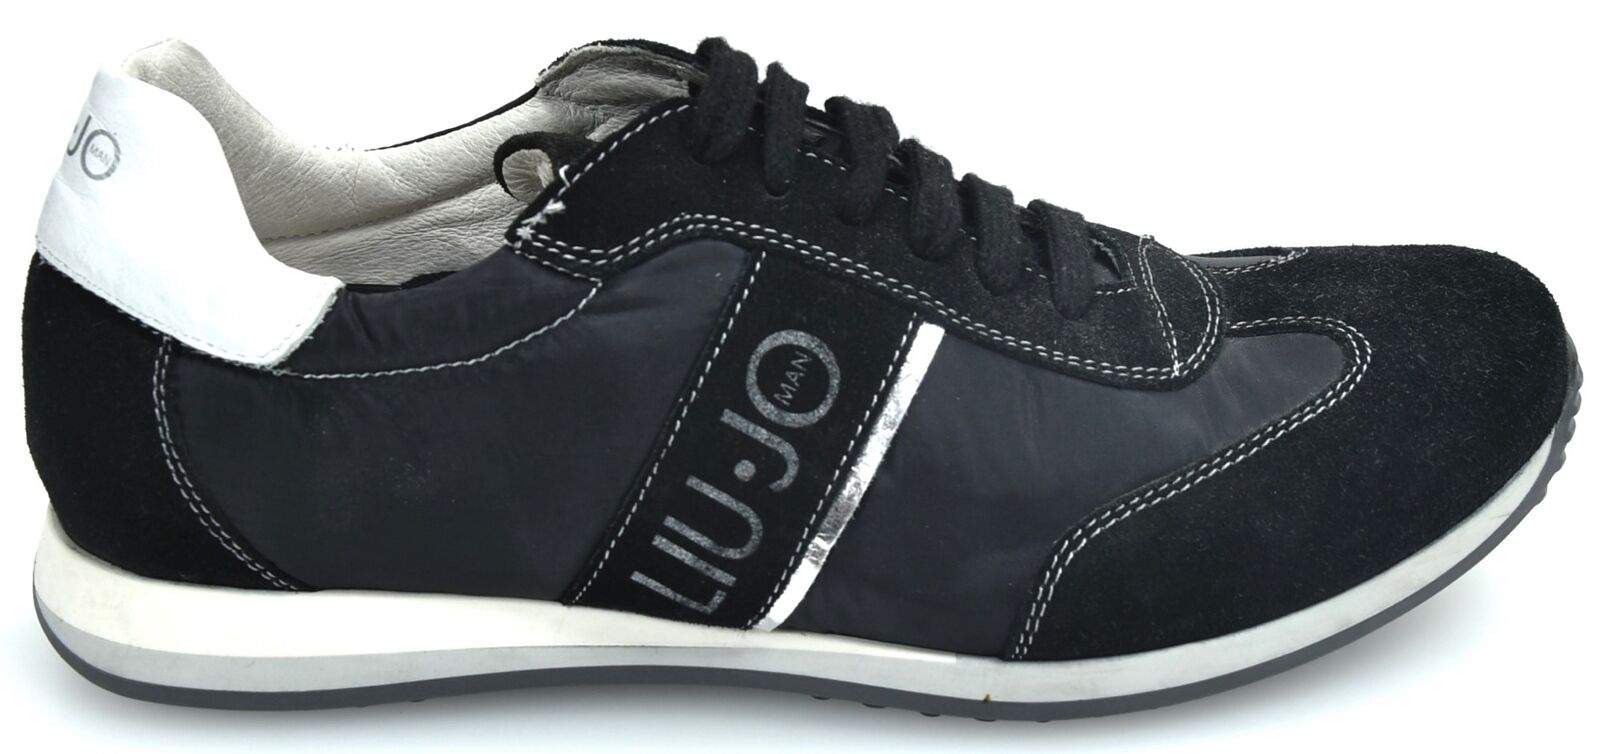 LIU-JO MAN FREE TIME CASUAL SNEAKER SHOES MADE IN ITALY CODE LJ 418